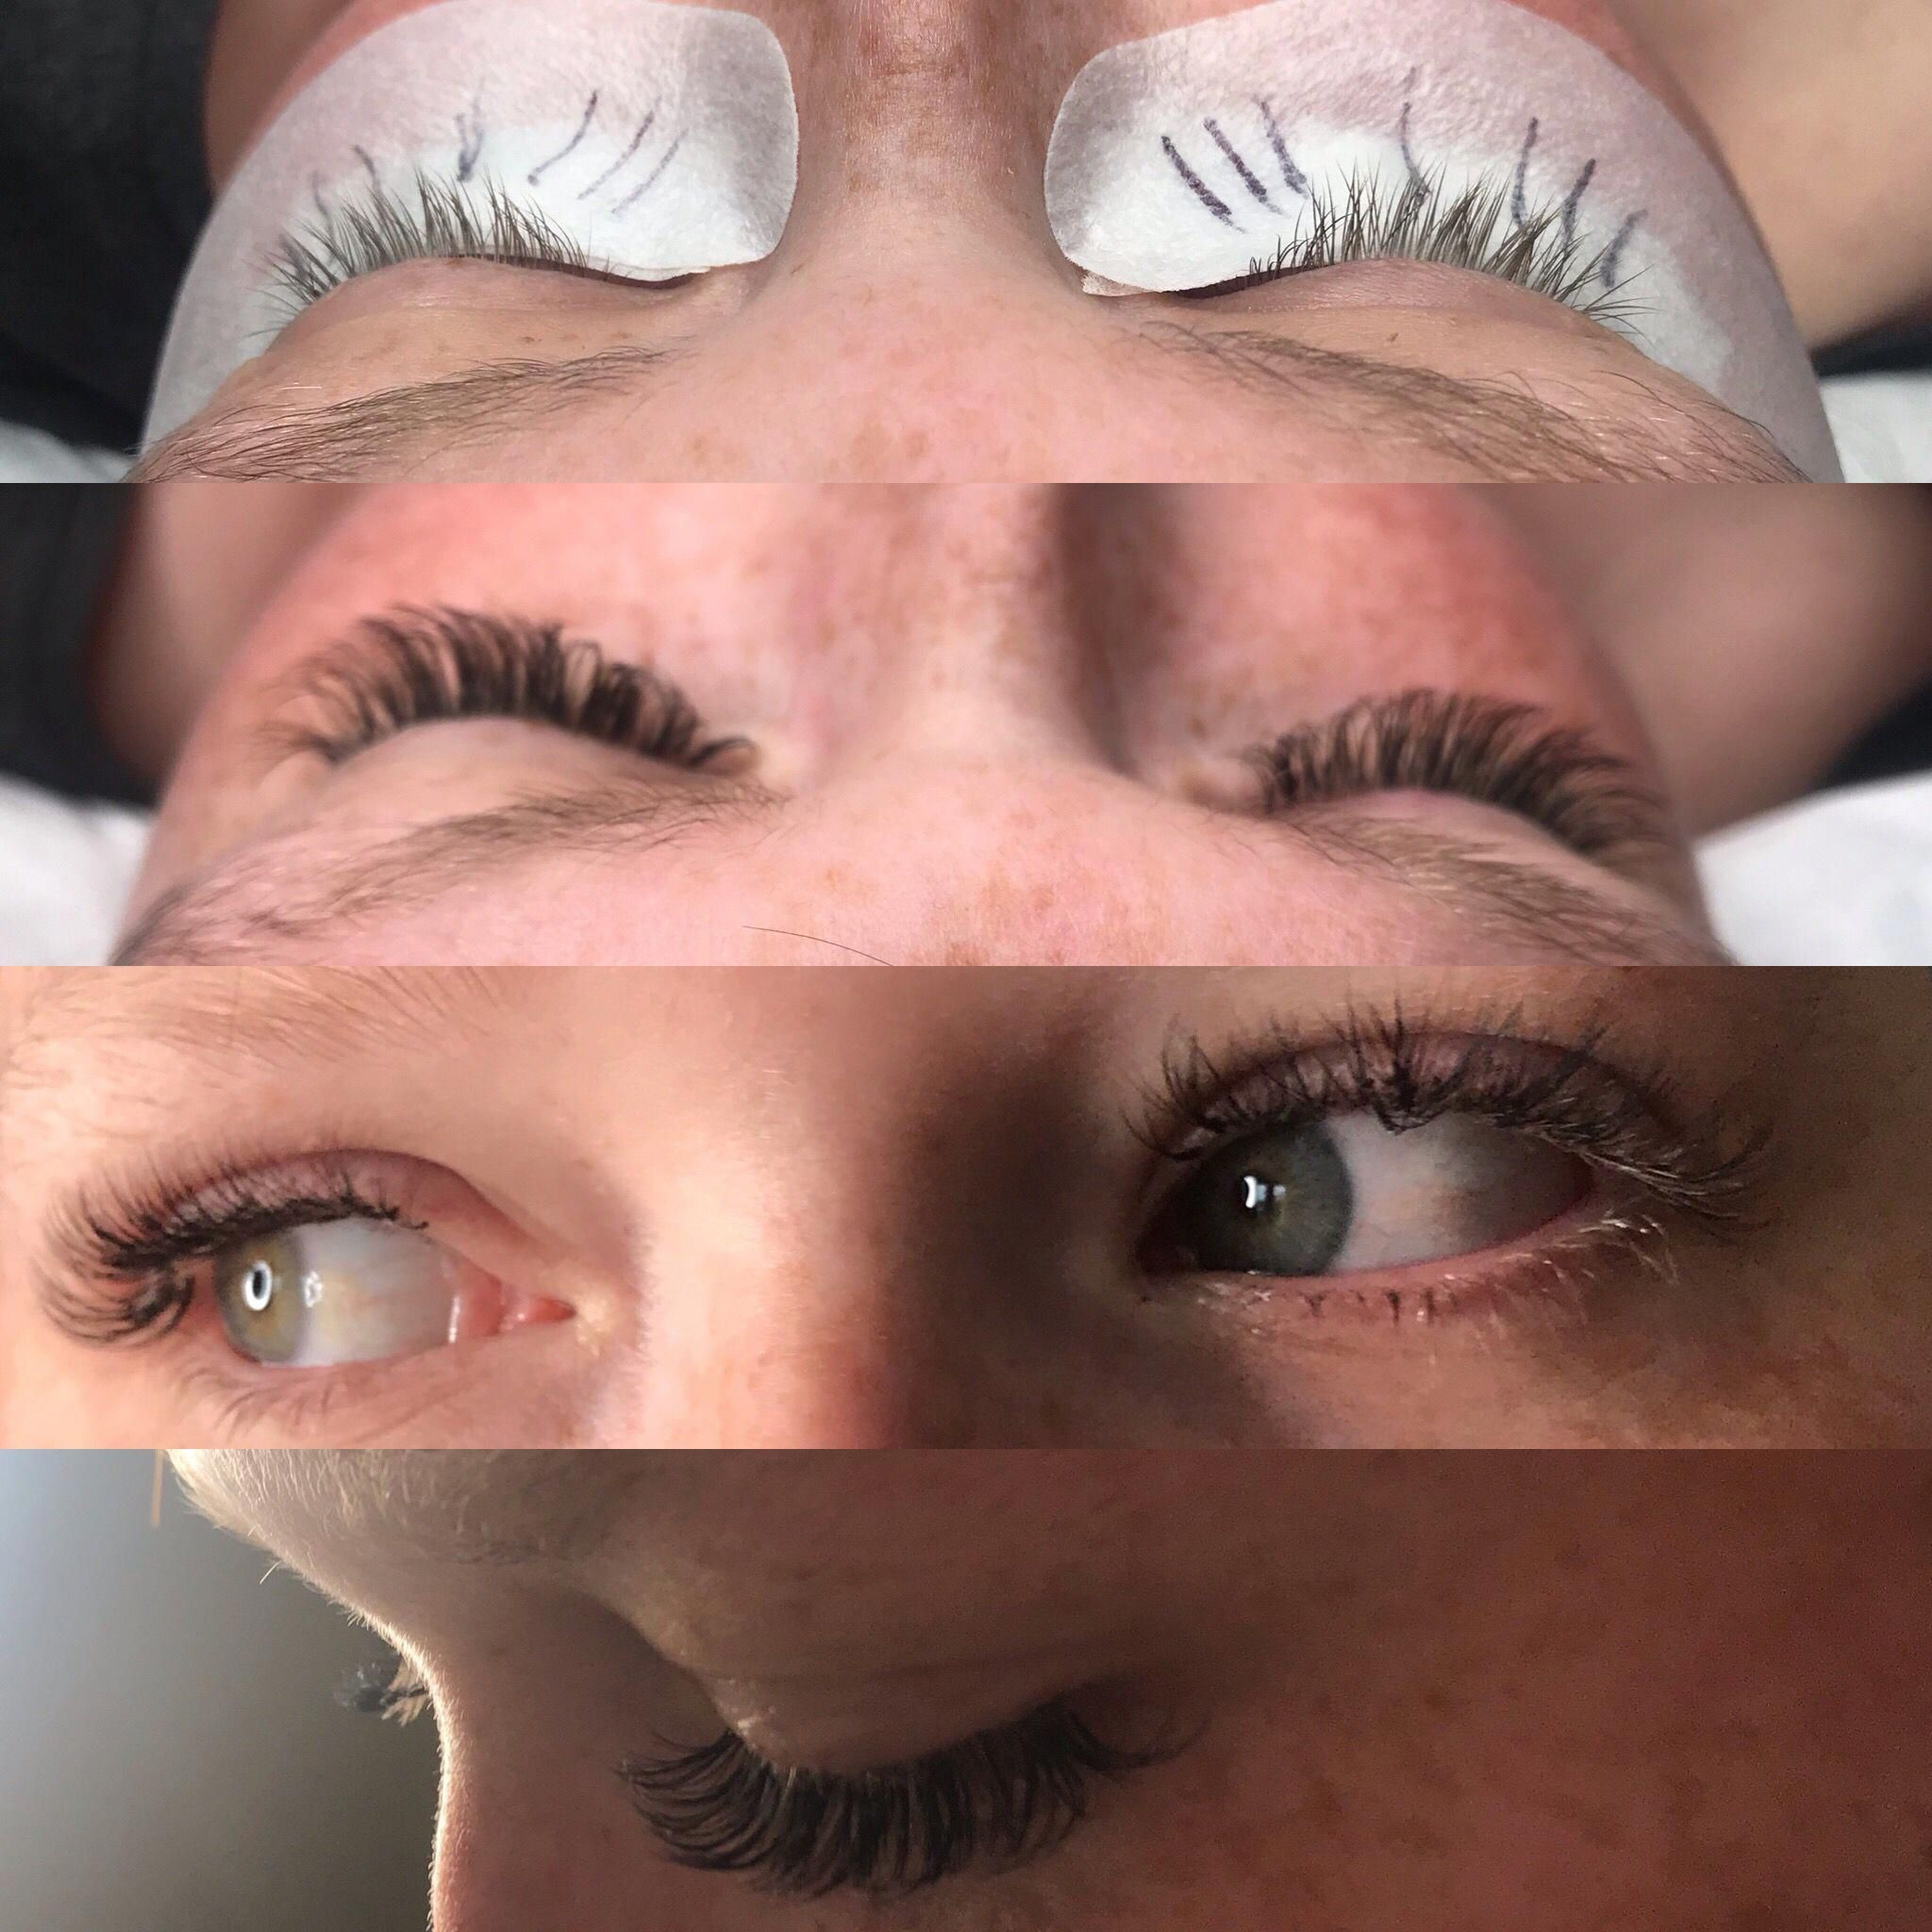 Pin by Jocelynmurphy on long lashes (With images) | Mobile ...